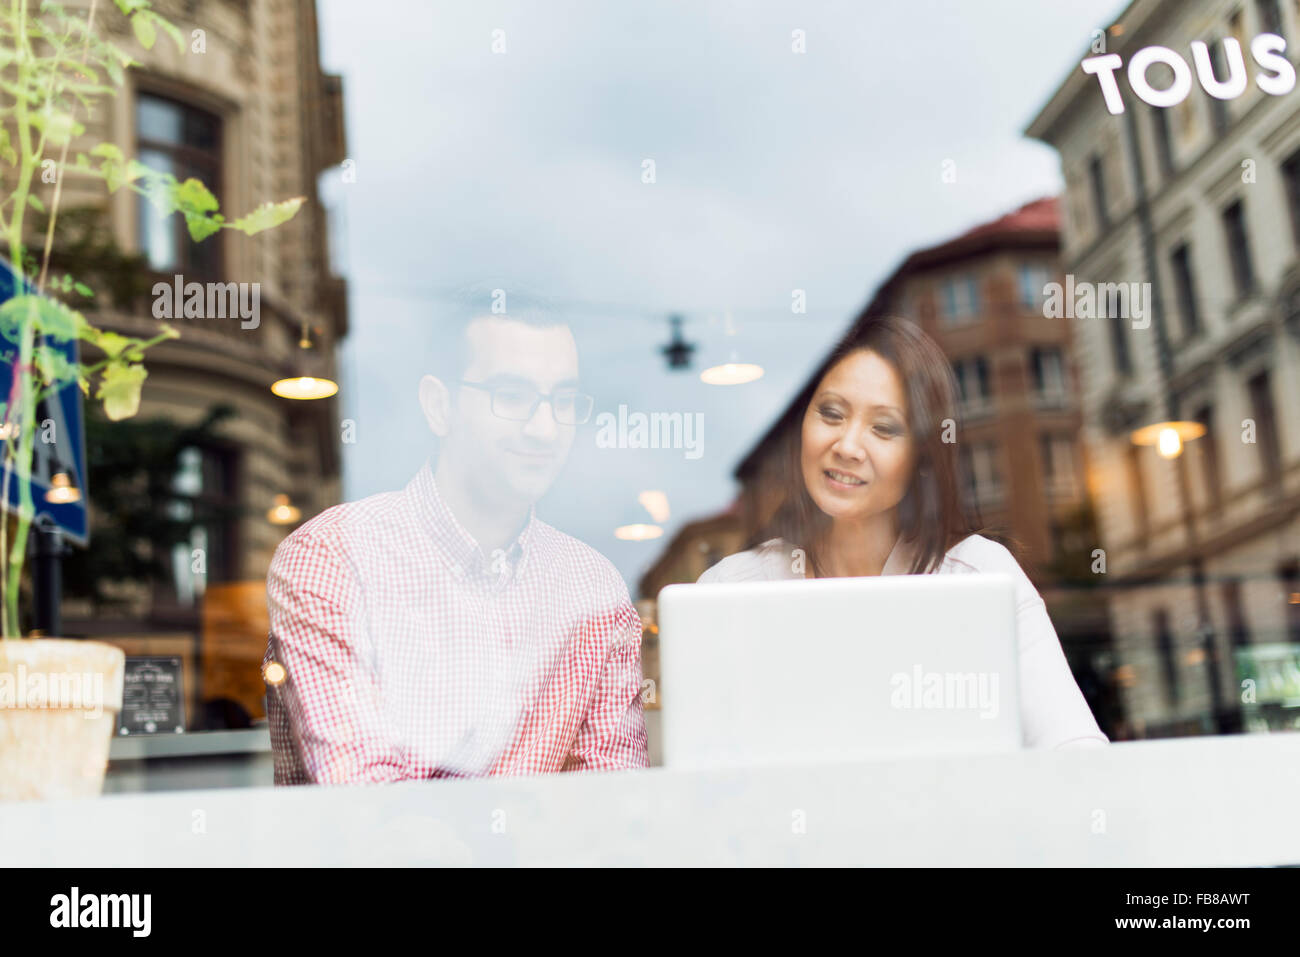 Sweden, Uppland, Stockholm, Man and woman talking in cafe Stock Photo